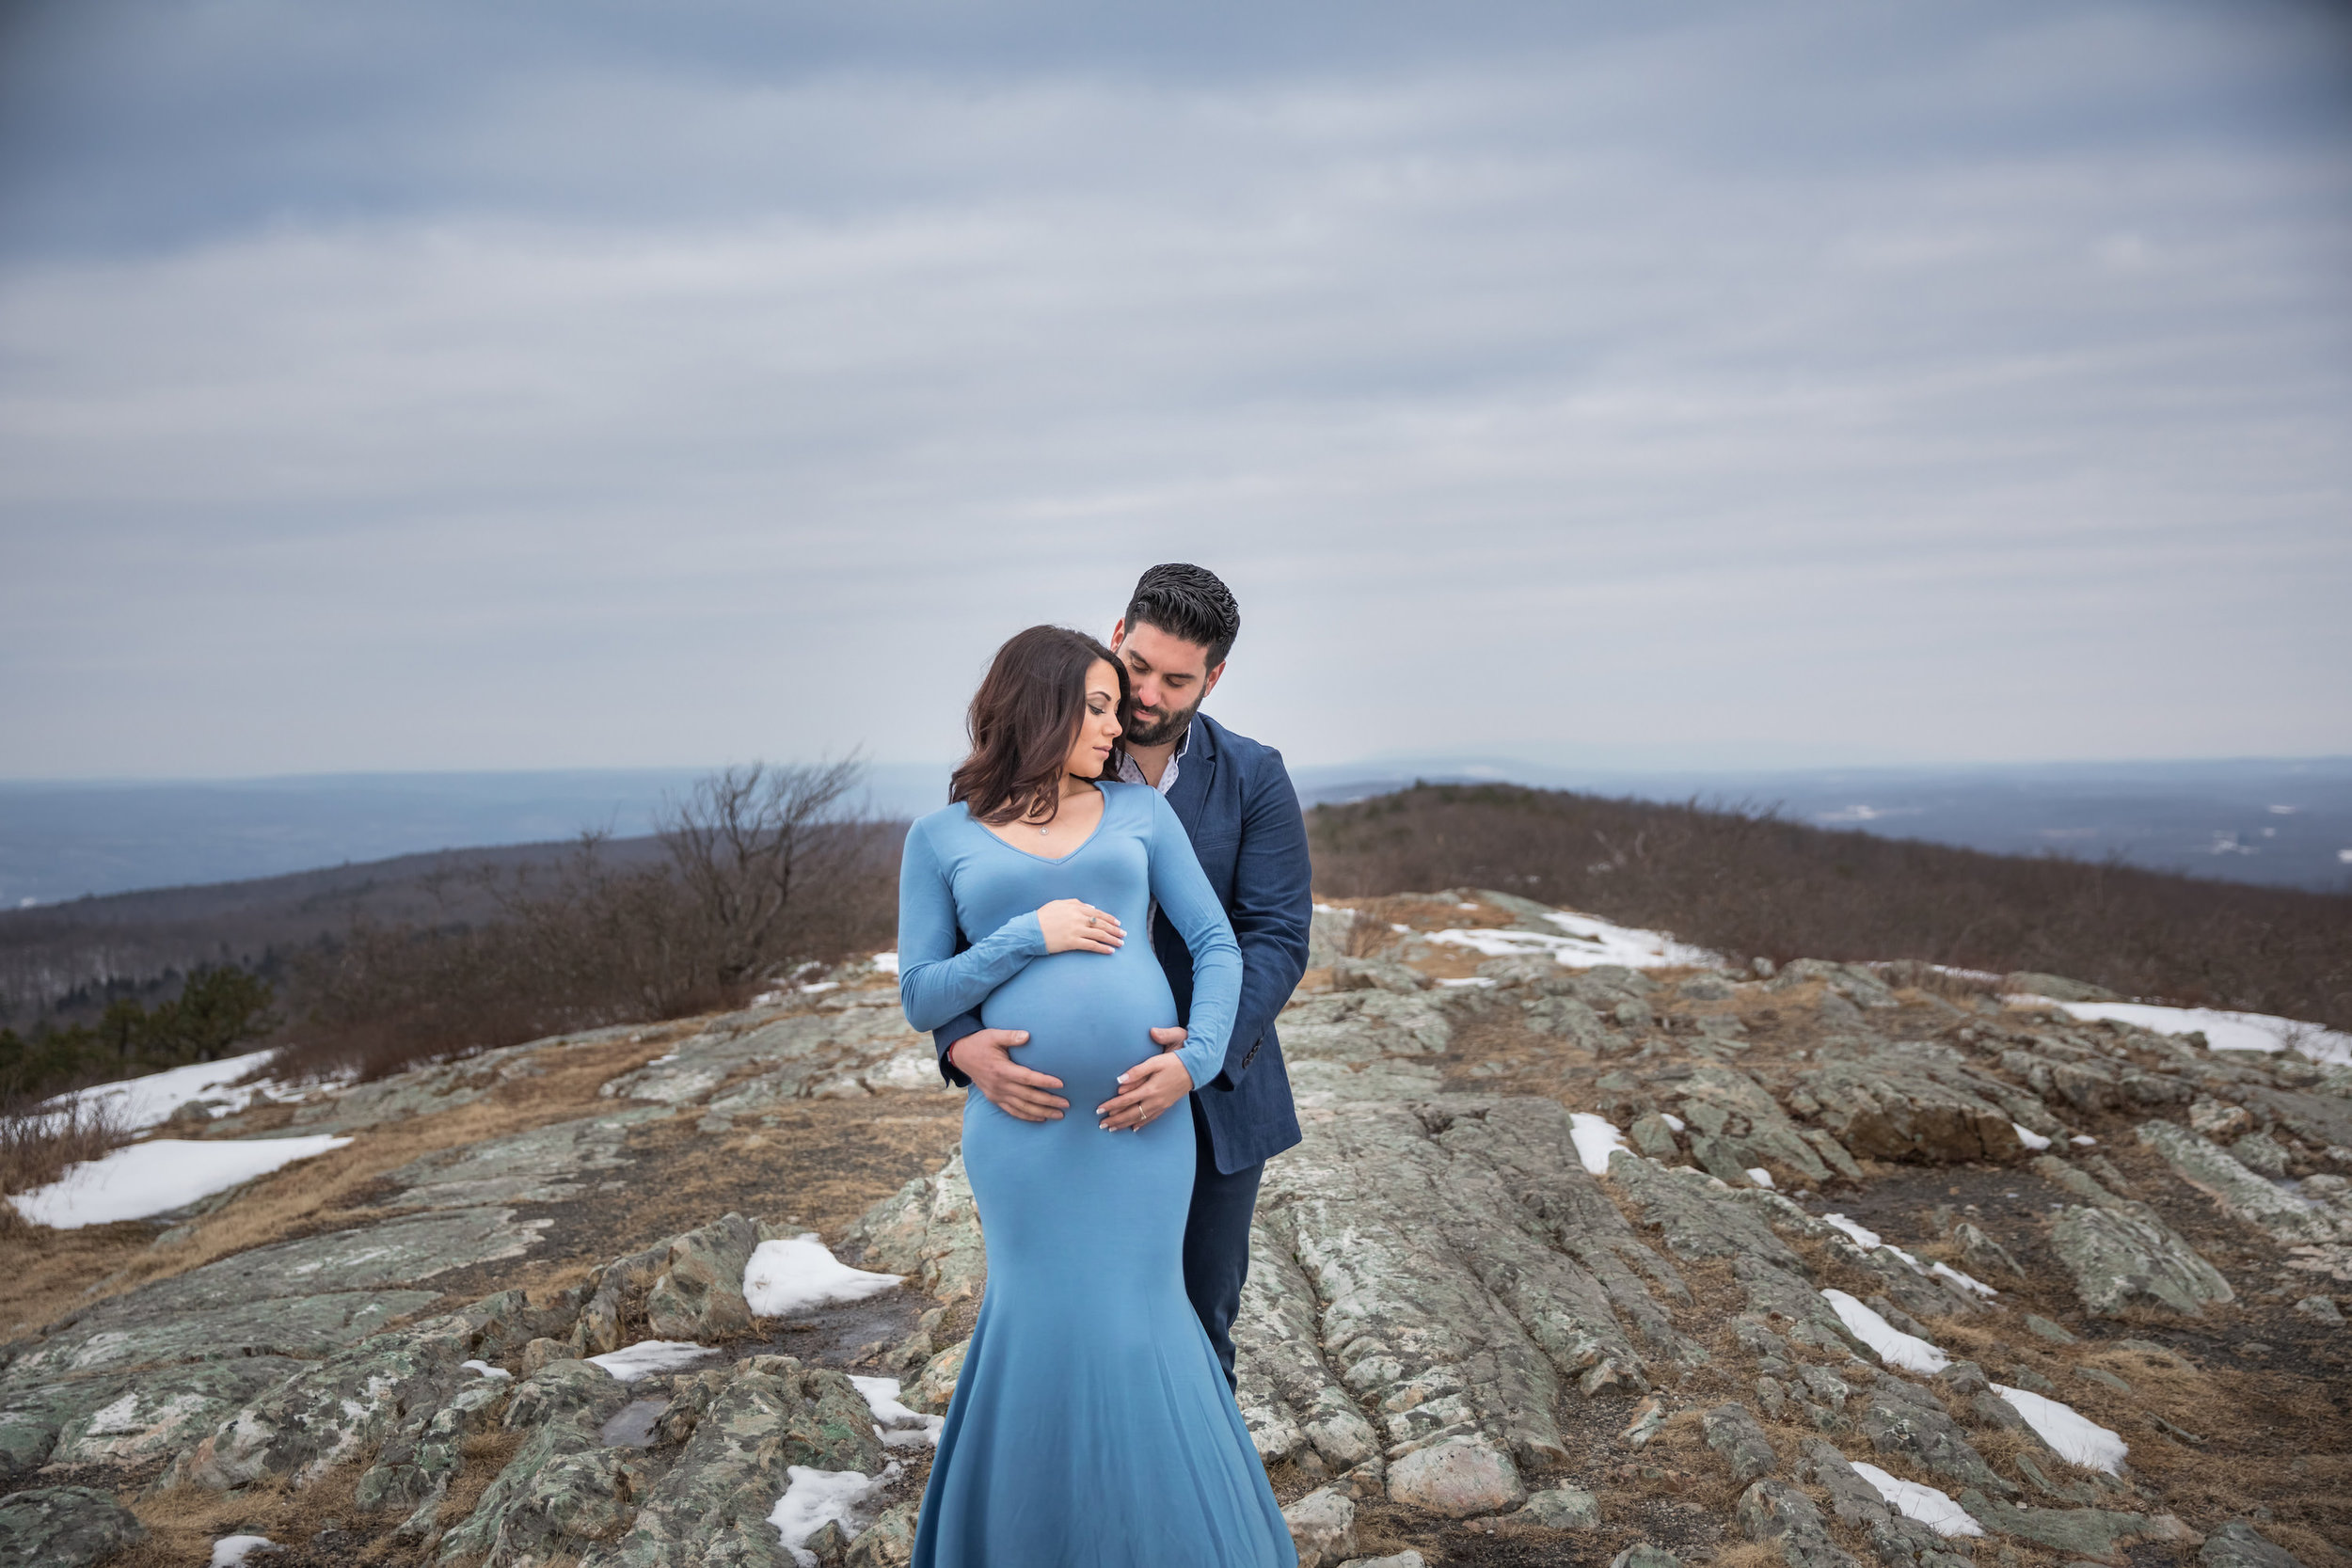 Cassondre Mae Photography Hudson Valley Maternity Photographer 2.jpg